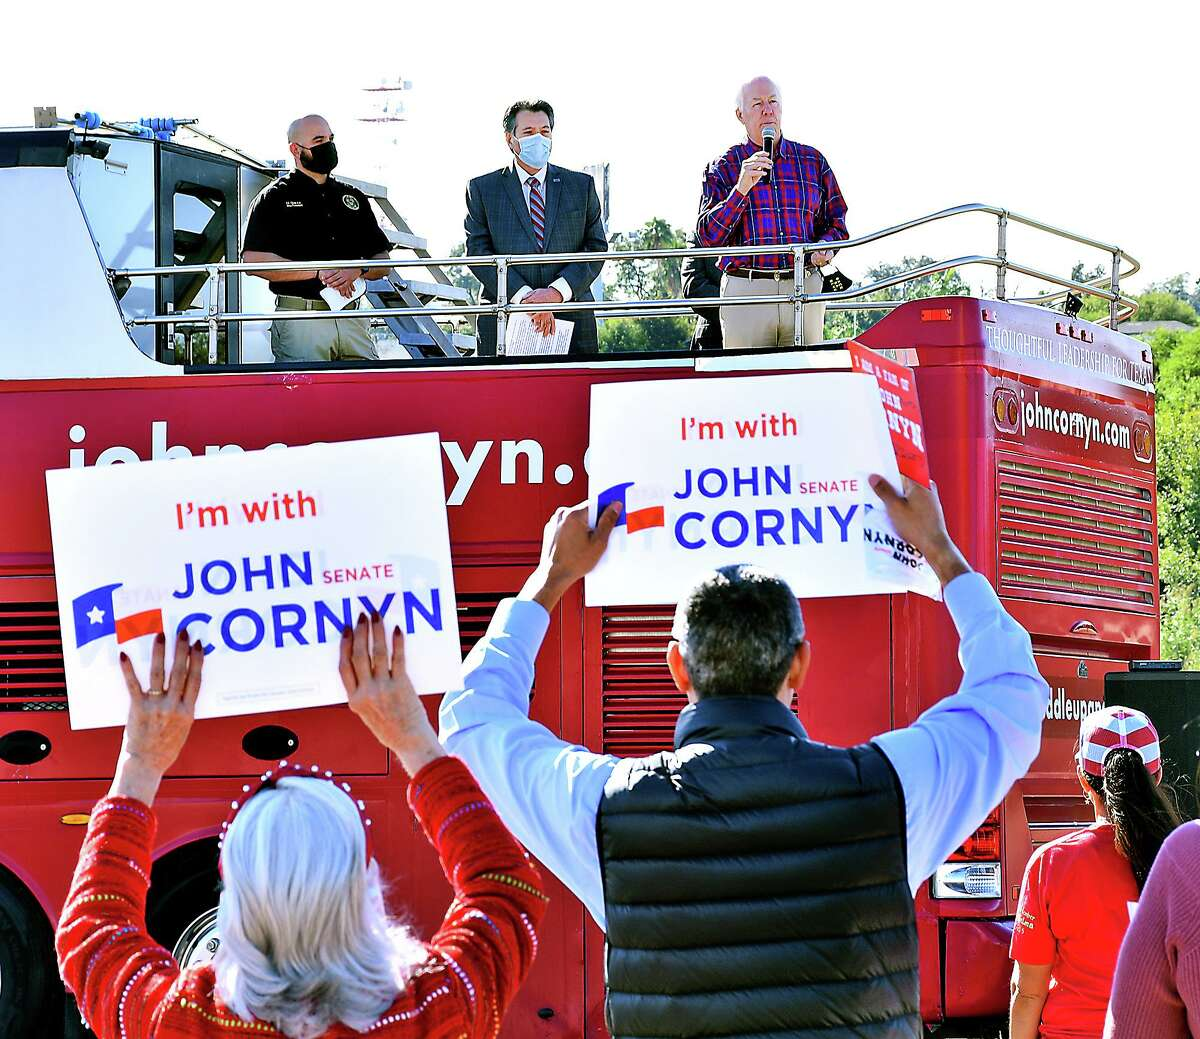 Senator John Cornyn, second from left, is accompanied by Laredo Mayor Pete Saenz, former LULAC National President Roger C. Rocha Jr., and Hector Garza, president of the National Border Patrol Council, Monday, November 2, 2020, as he stopped in Laredo, Texas for a get out the vote rally as he seeks re-election in the November 3, 2020 elections.